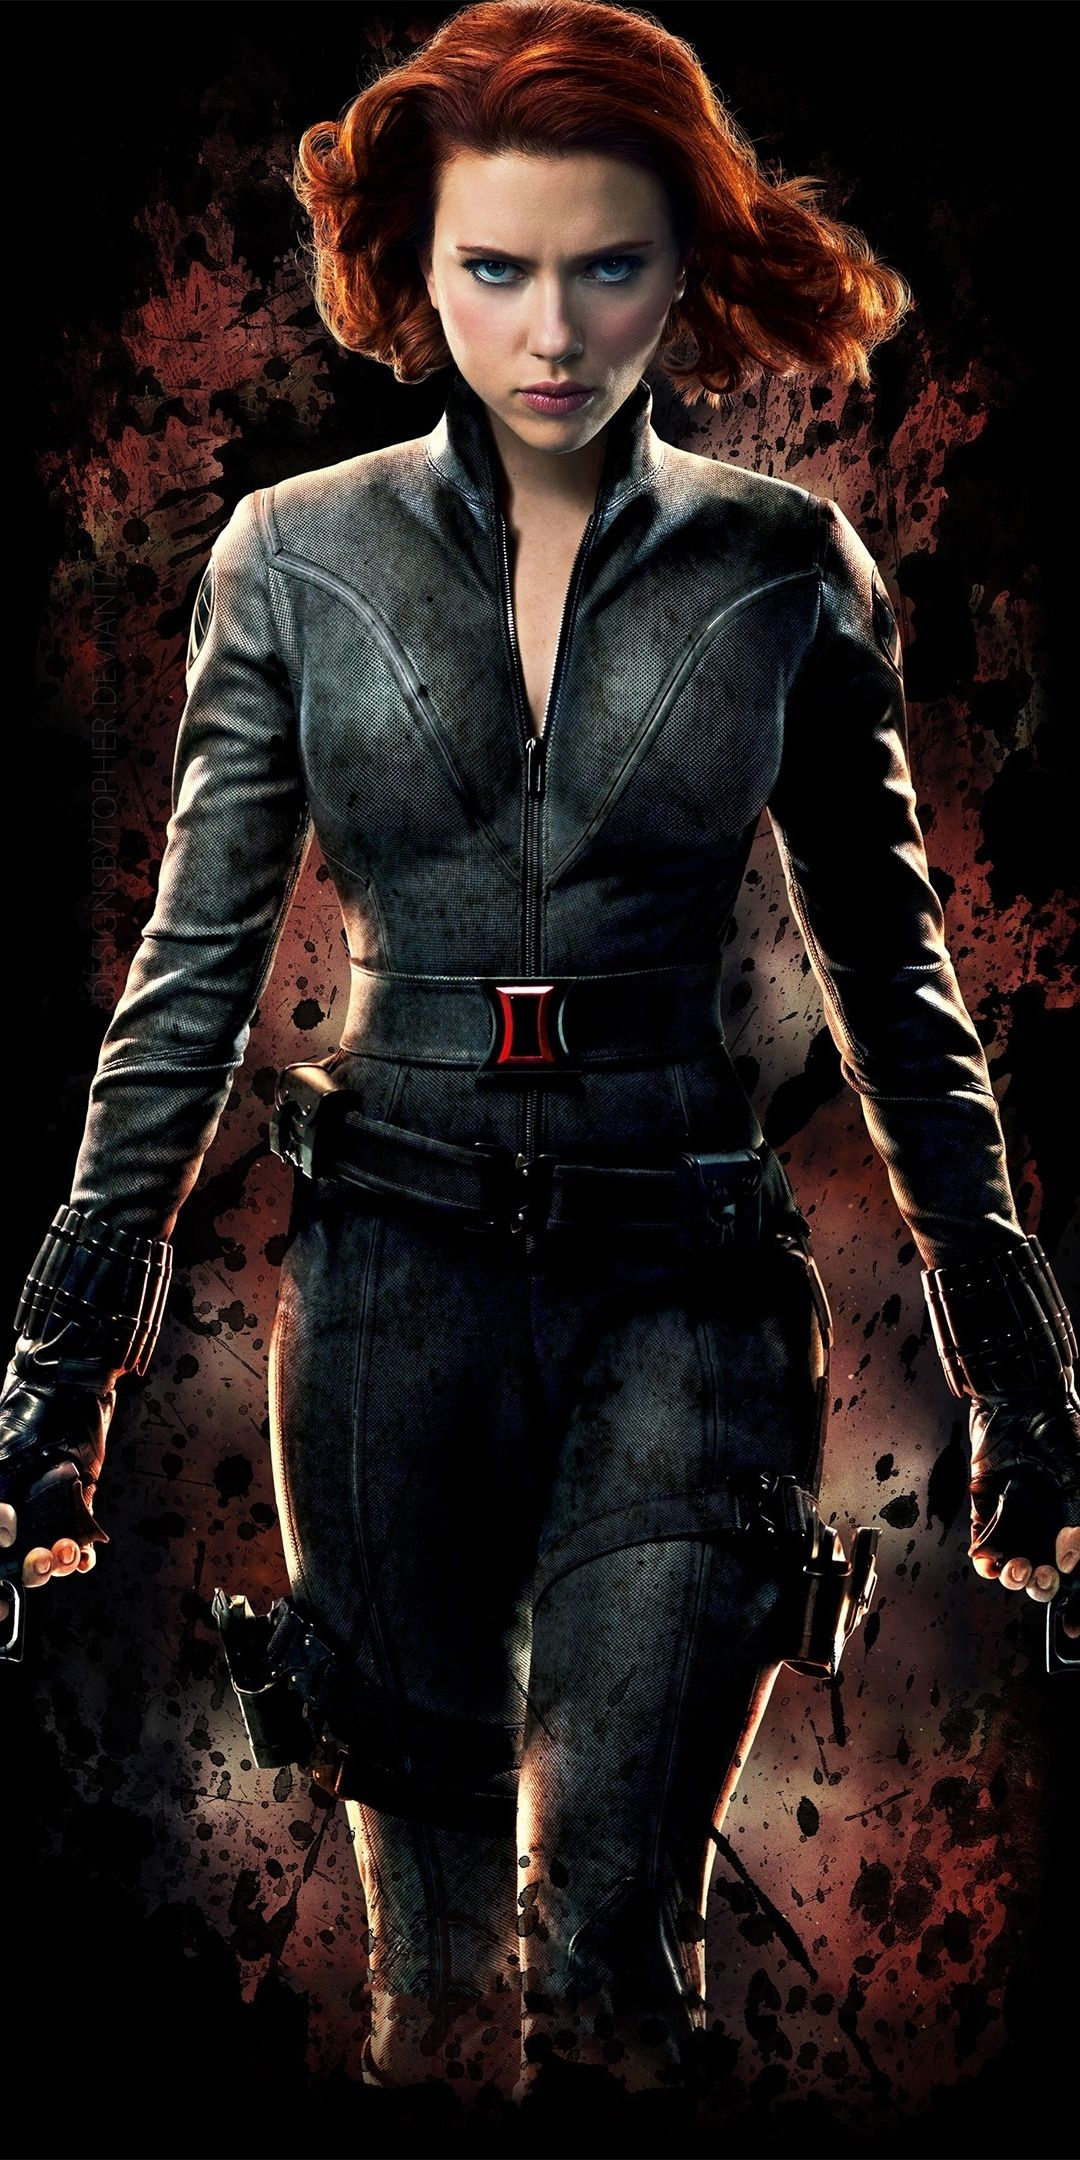 Black Widow Scarlett Johansson Avengers Minimal 1080x2160 Wallpaper Black Widow Marvel Black Widow Avengers Black Widow